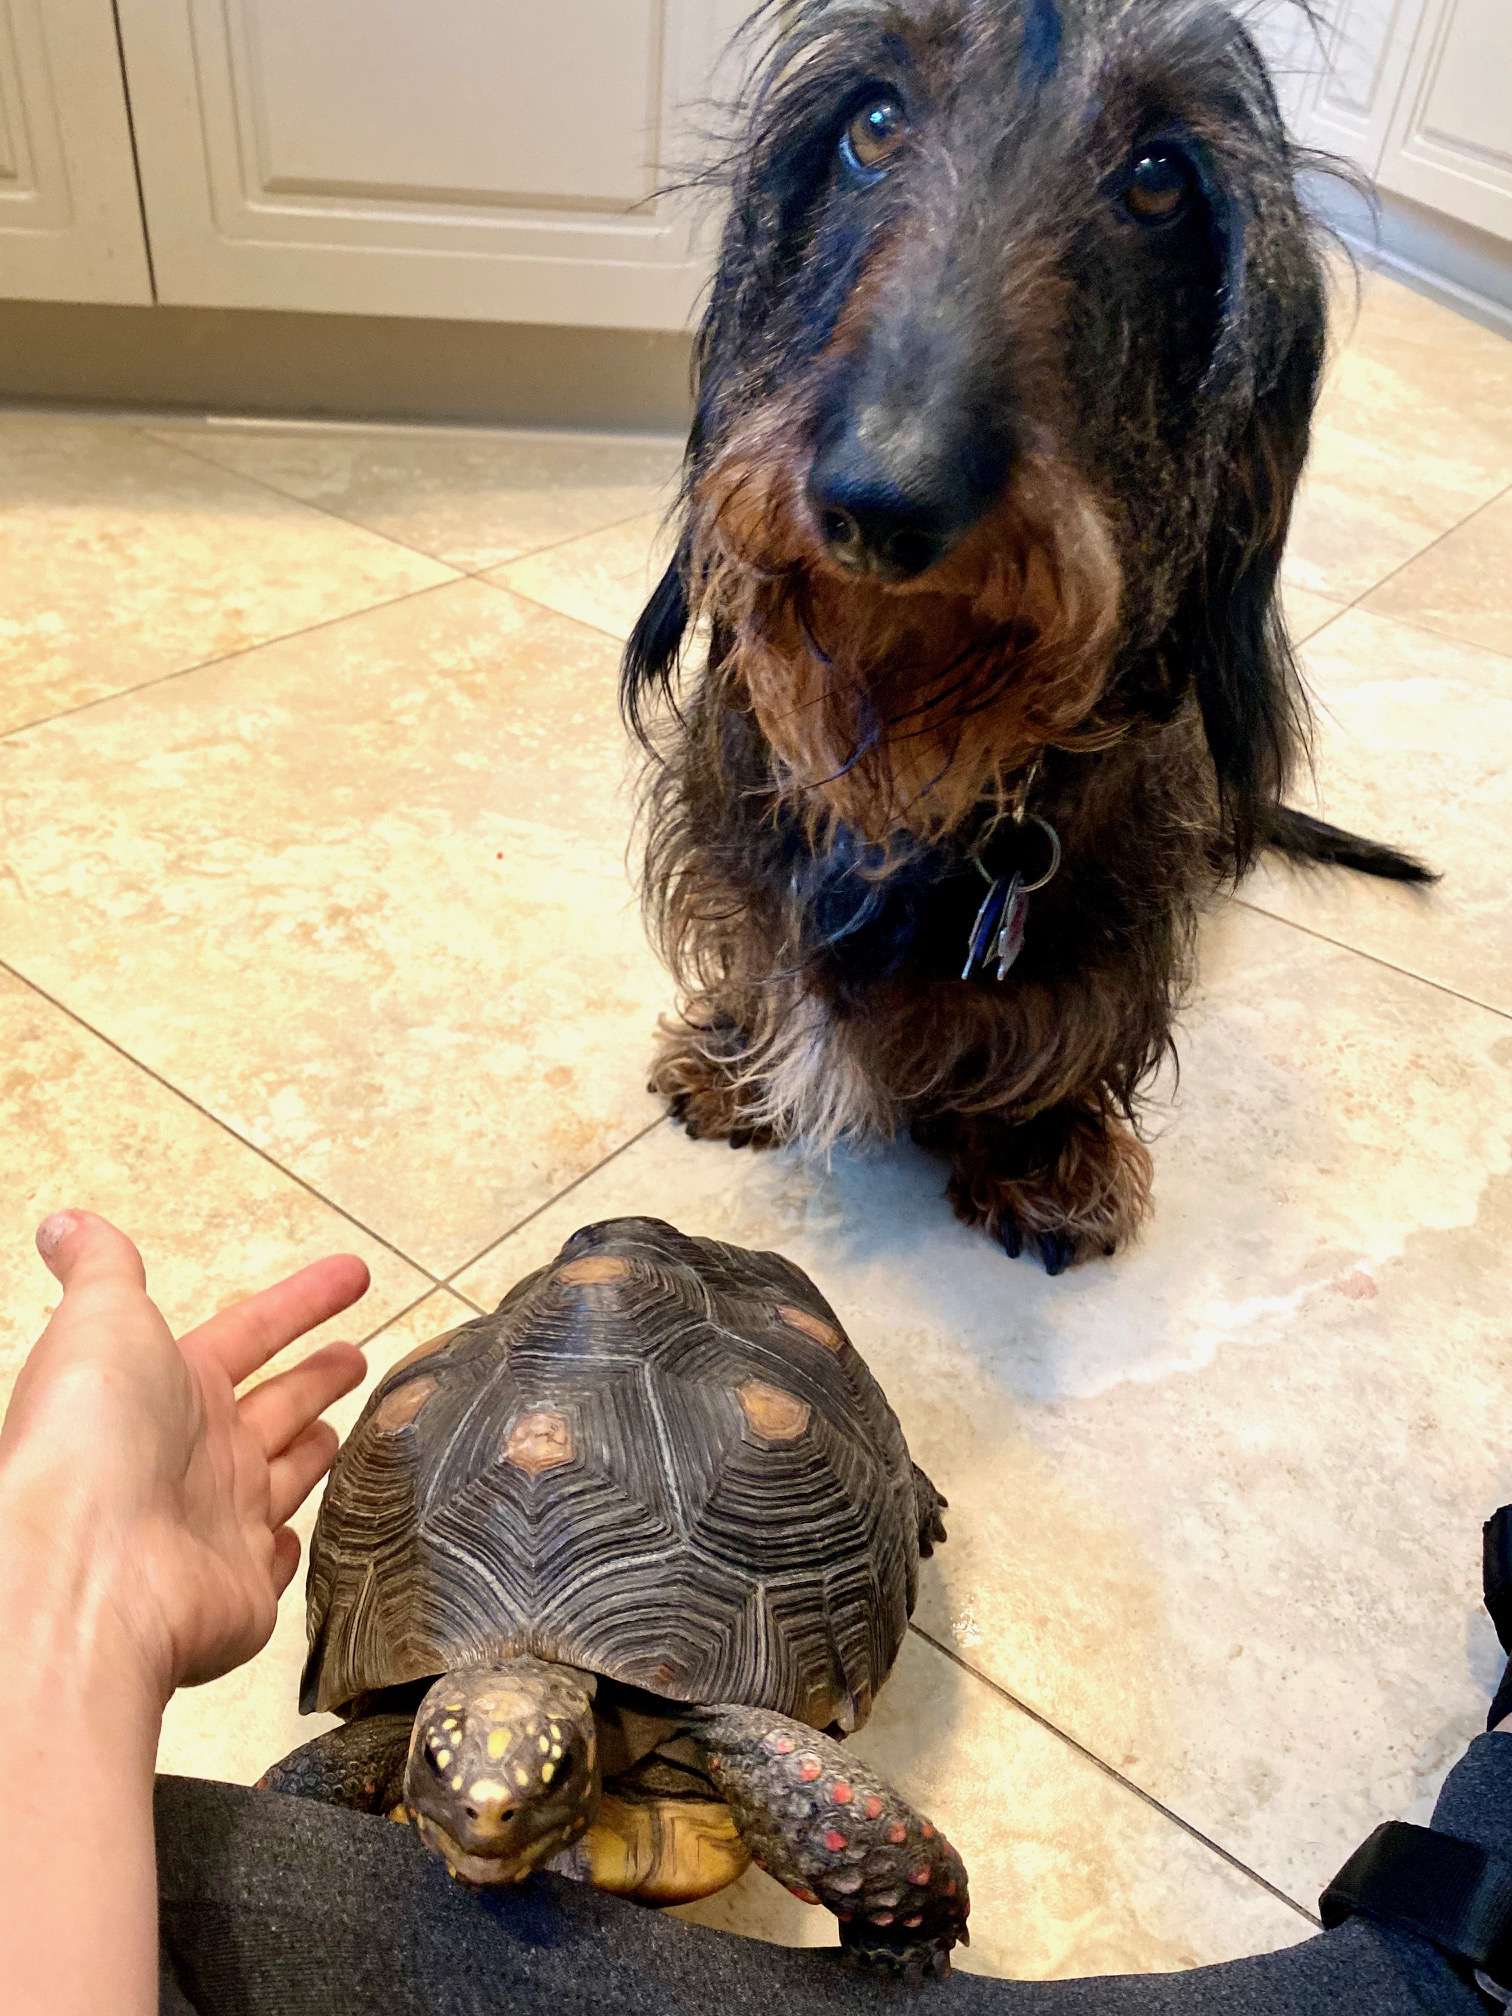 tortoise with dachshund friend